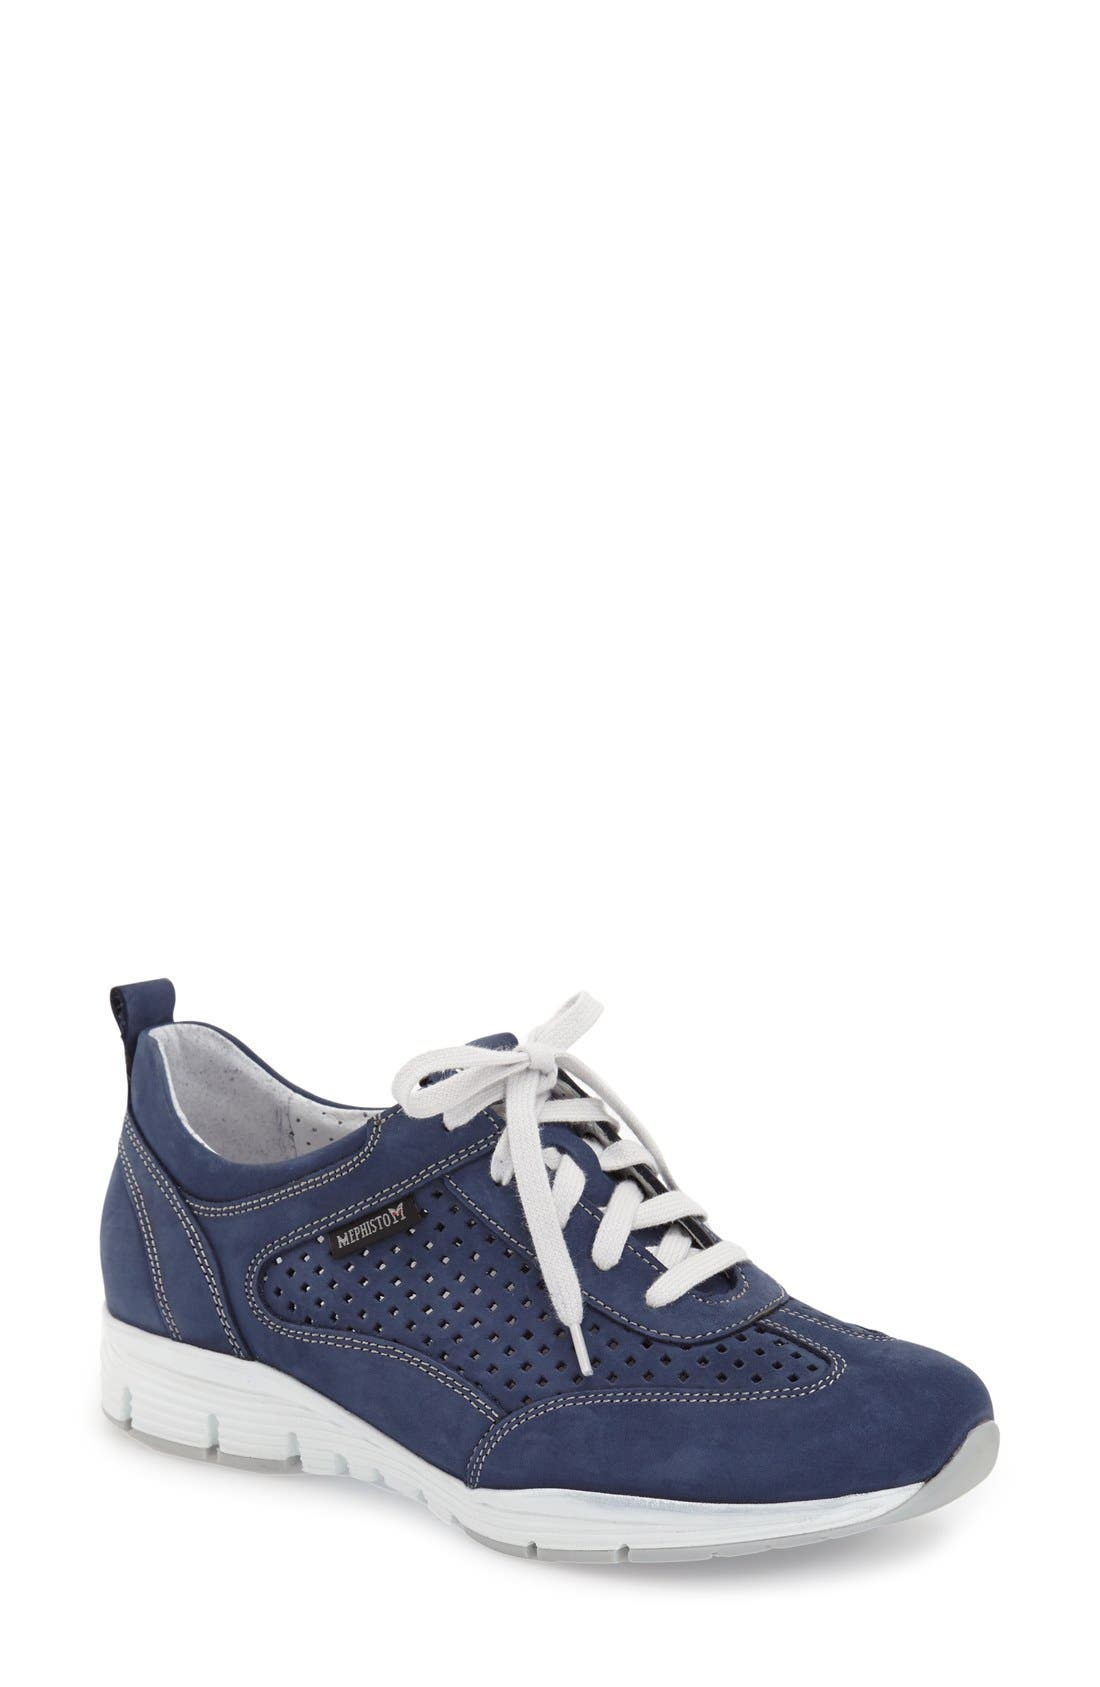 MEPHISTO 'Yoana' Soft Air Perforated Sneaker